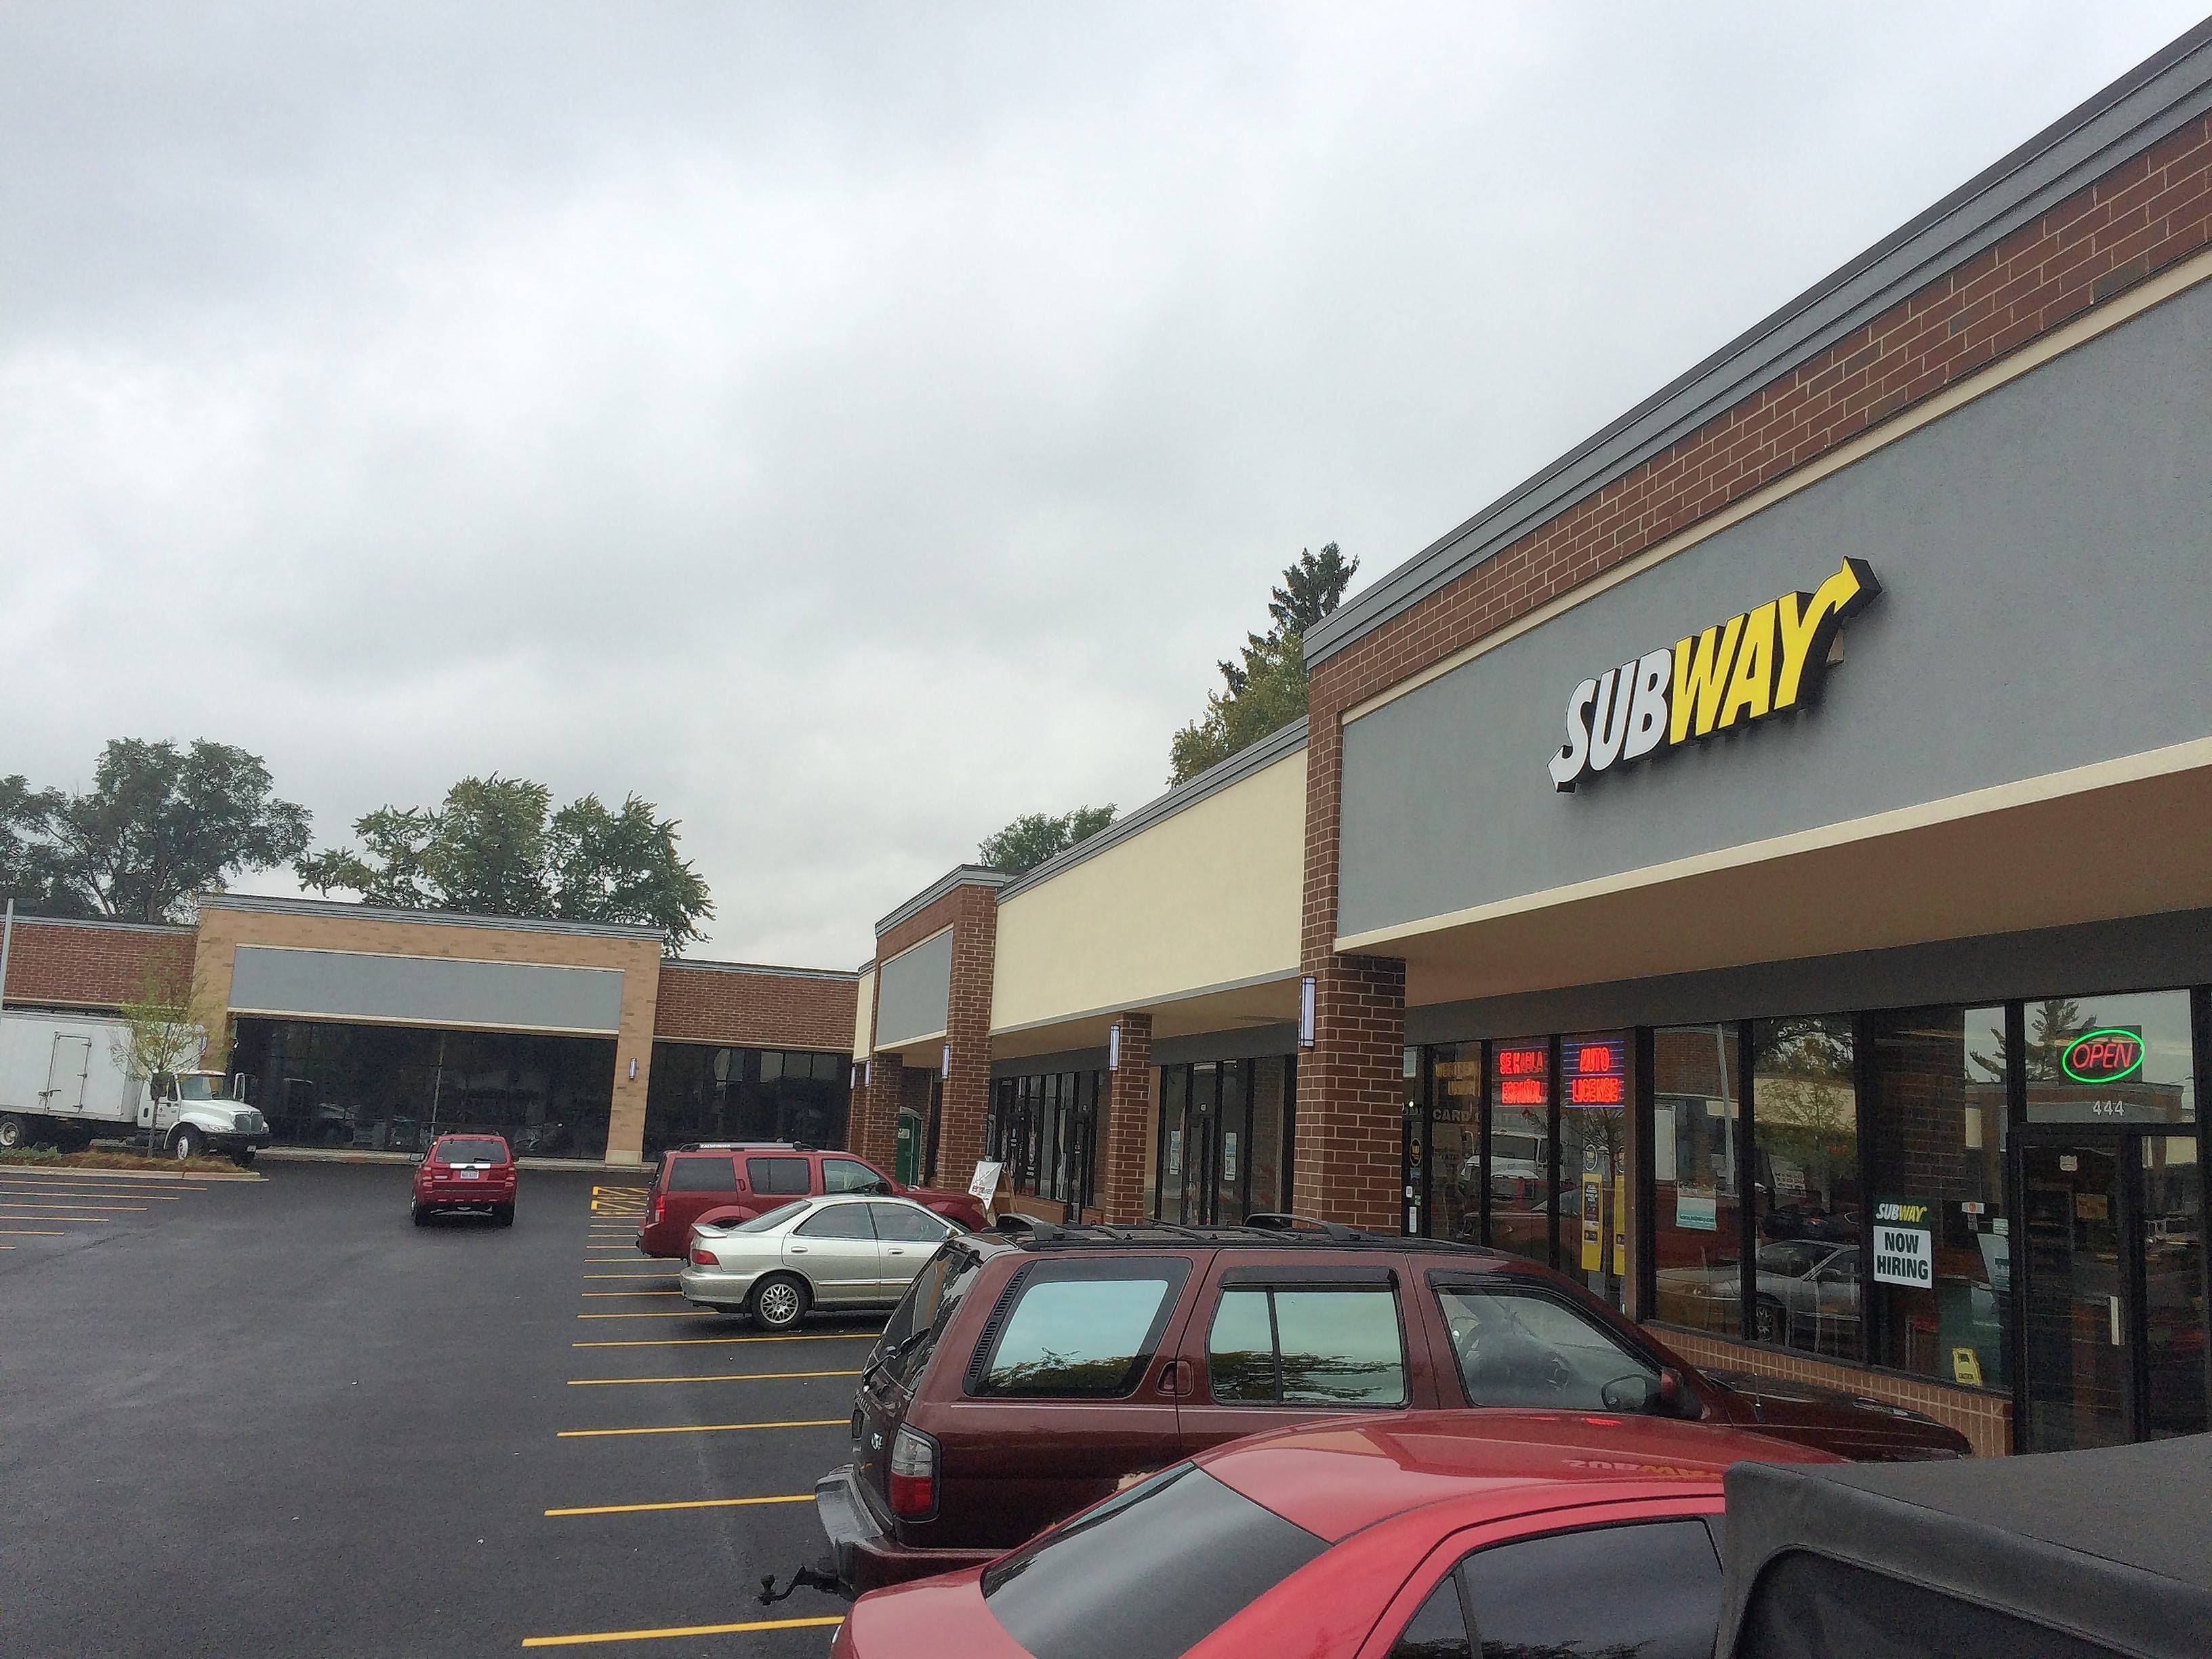 Folks in Mundelein excited about Hawley Lake Plaza renovation